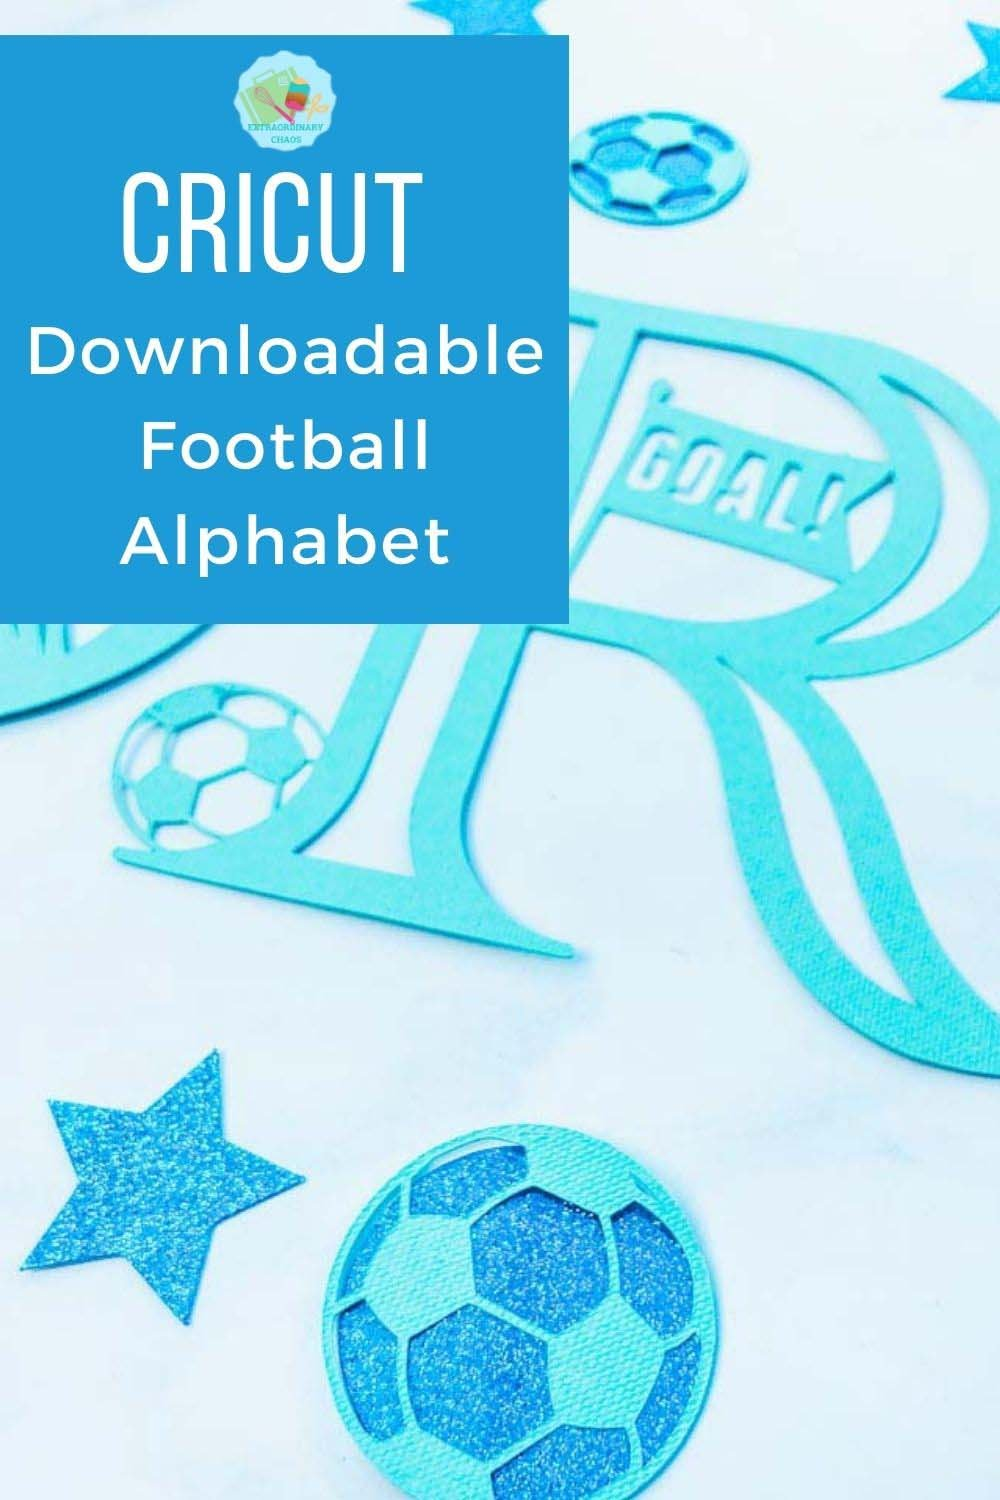 Free Cricut Football Alphabet and numbers PNG files for DIY Football Decor